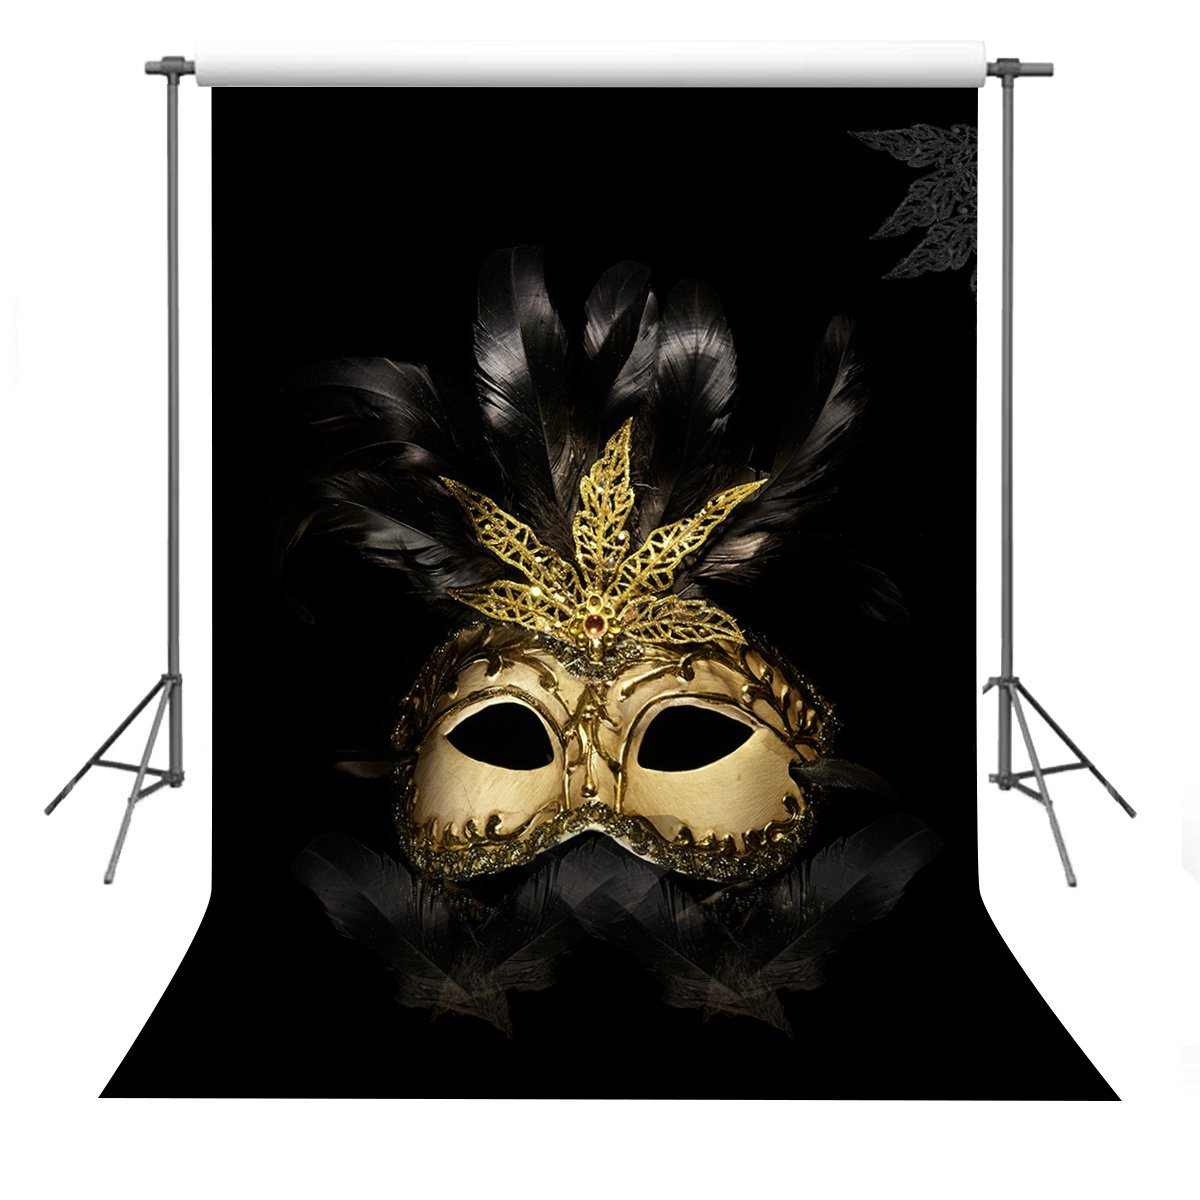 GreenDecor Polyster 5x7ft Golden Mask Backdrop Photography Props Dancing Party Background